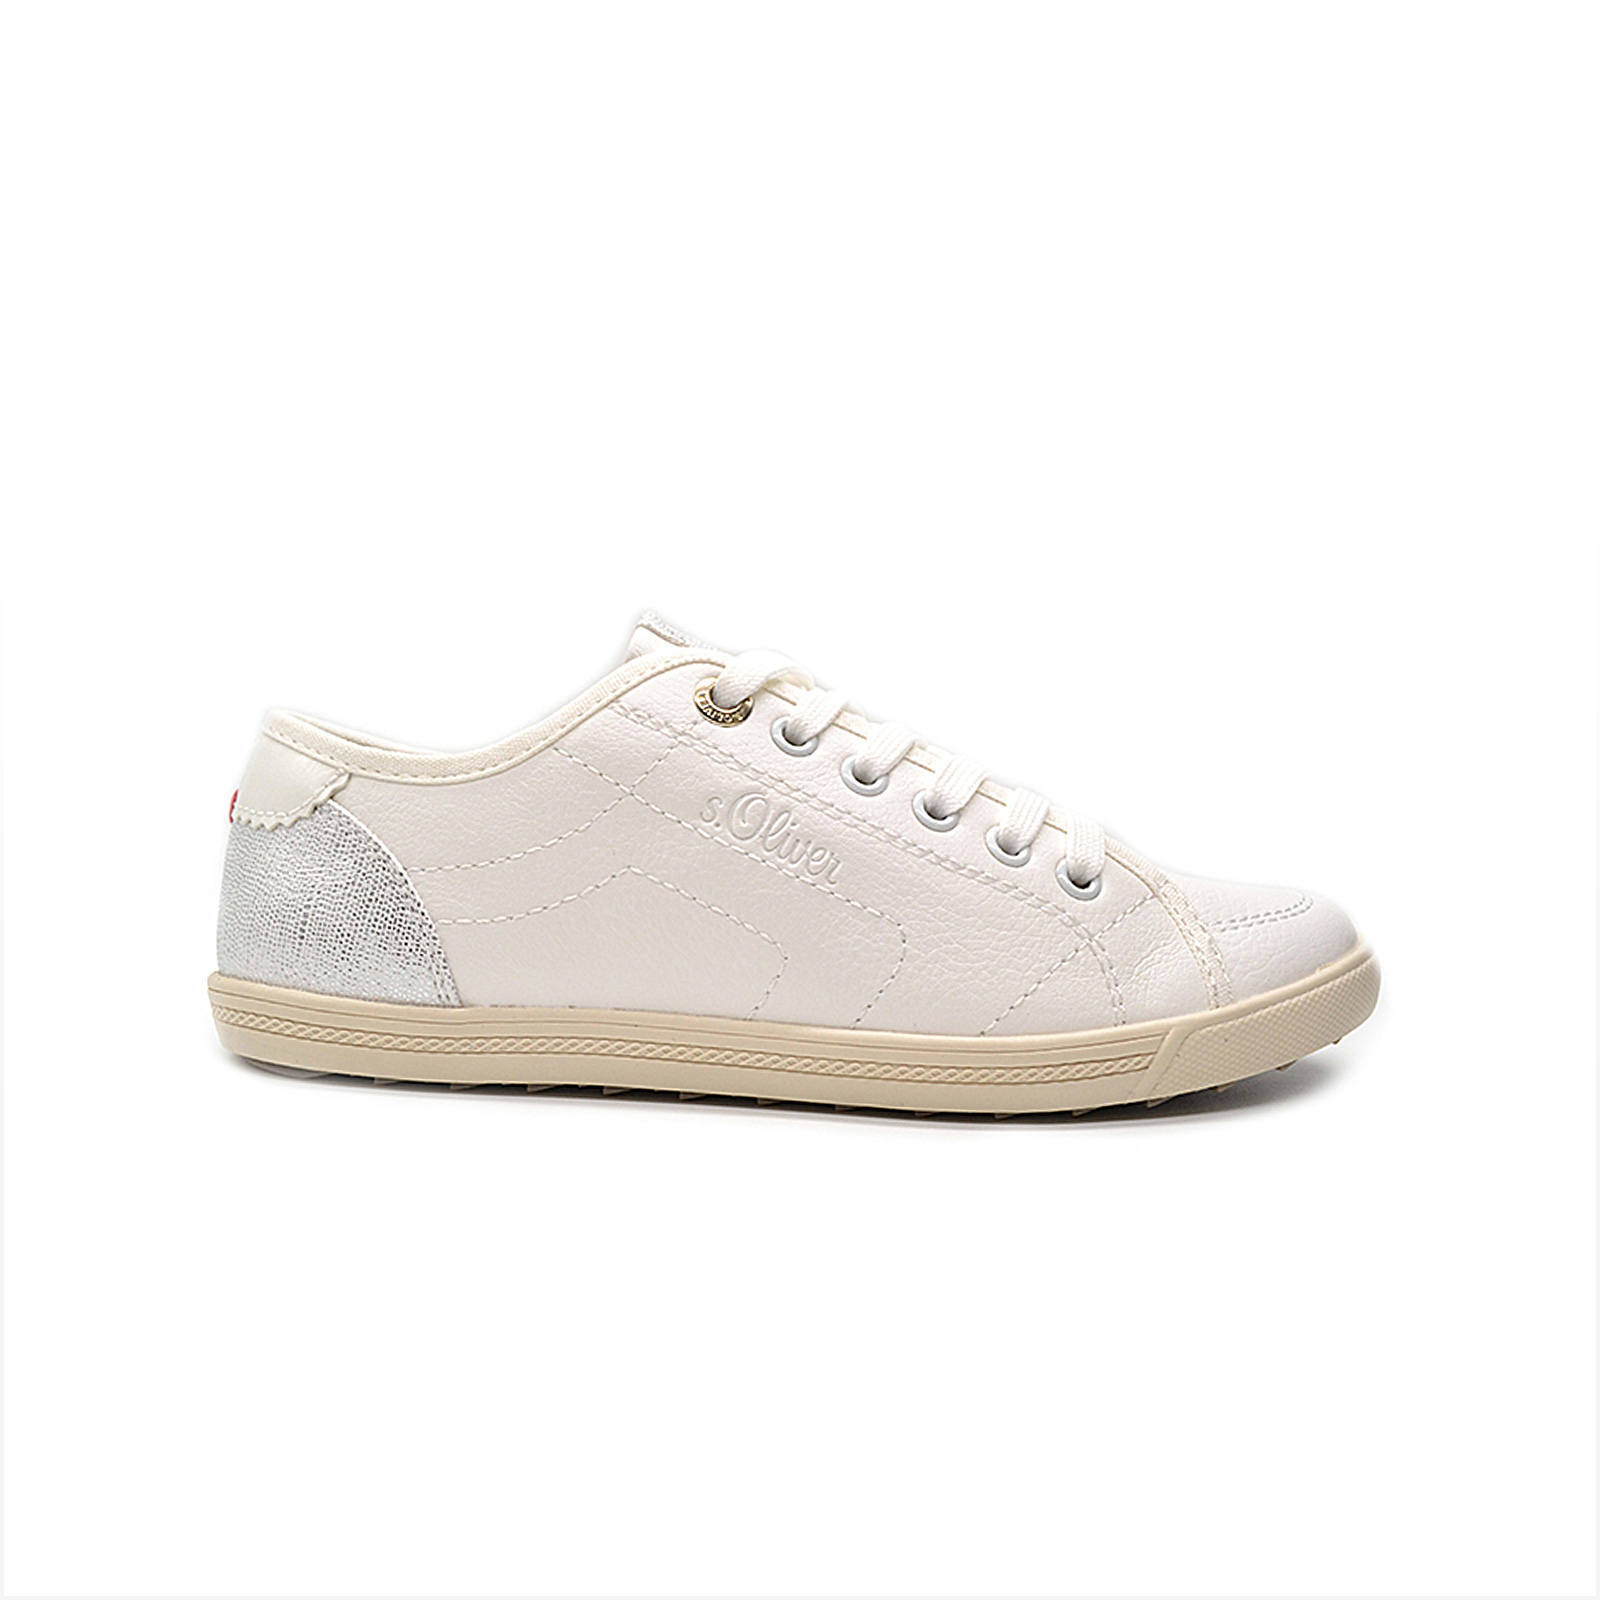 S. oliver - SNEAKER ΠΑΠΟΥΤΣΙ LOW - WHITE/SILVER